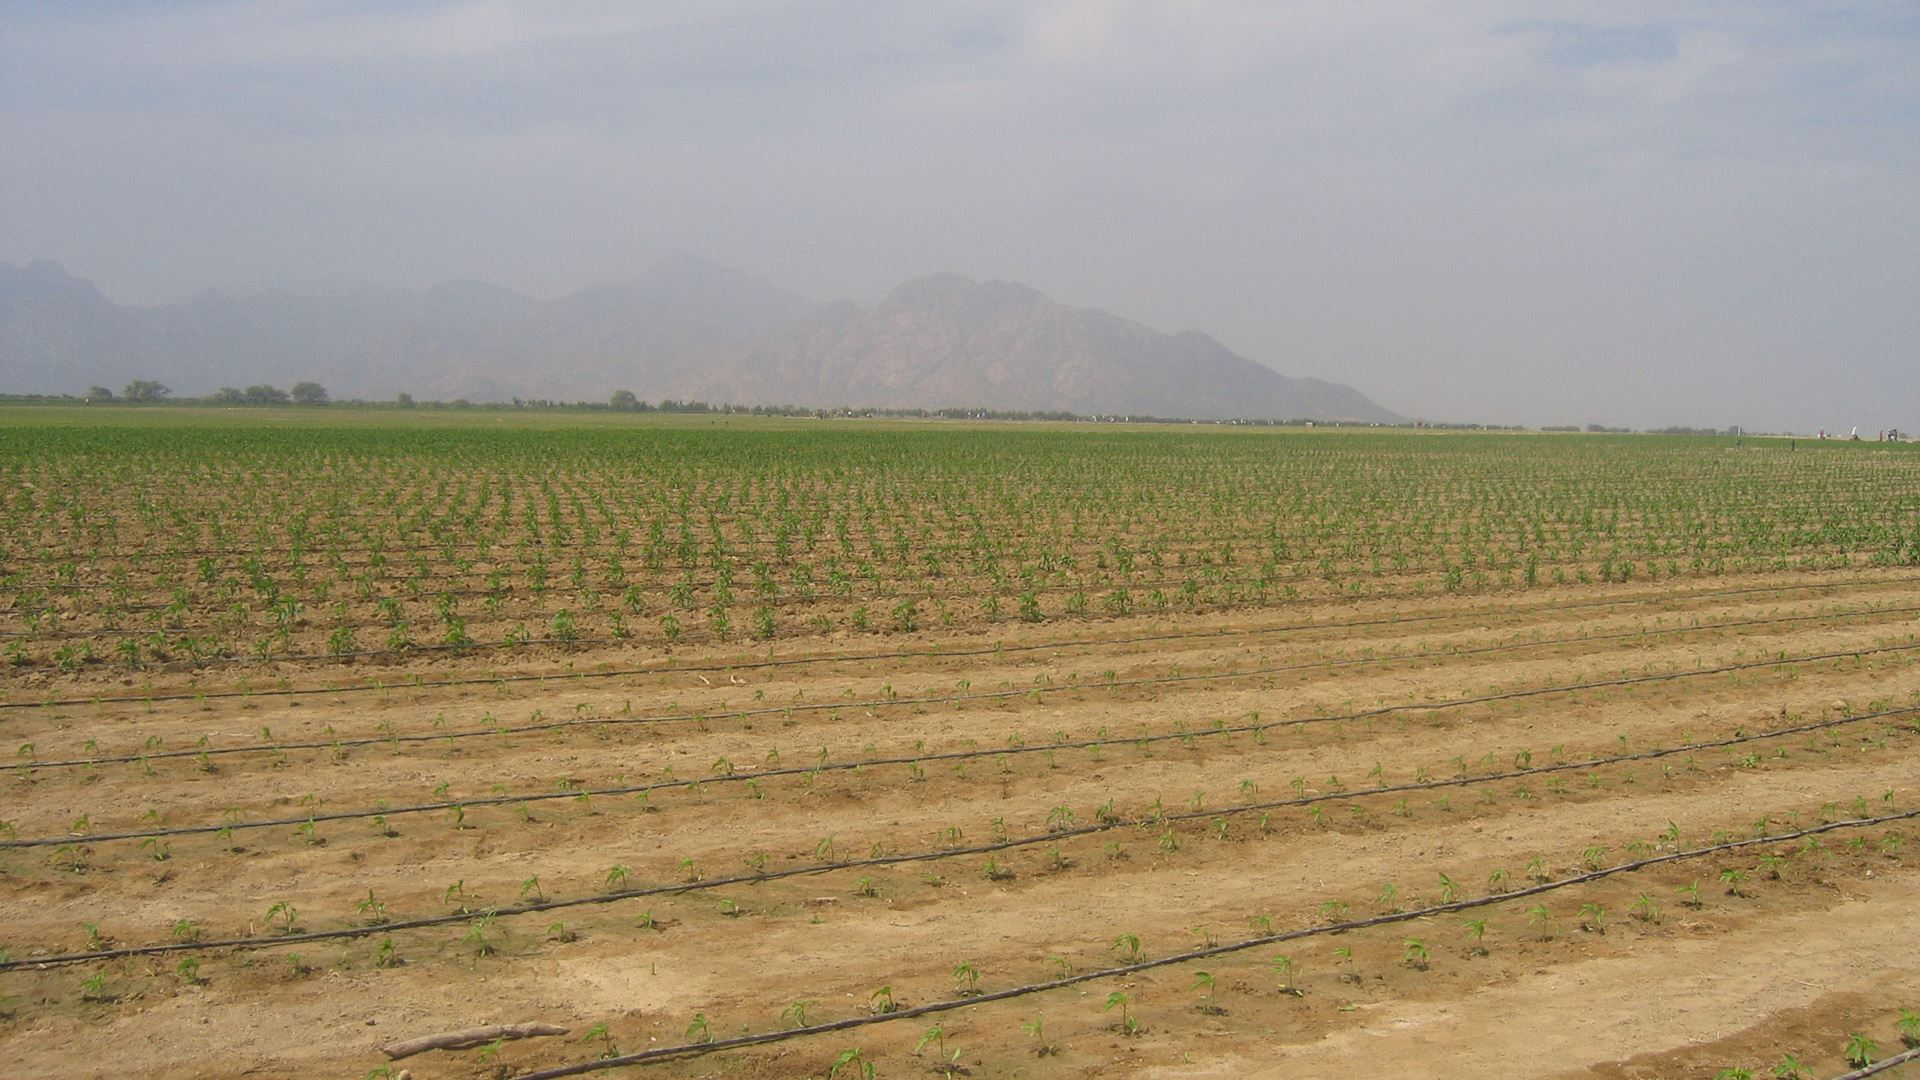 Irrigation of a chilli field in Peru.